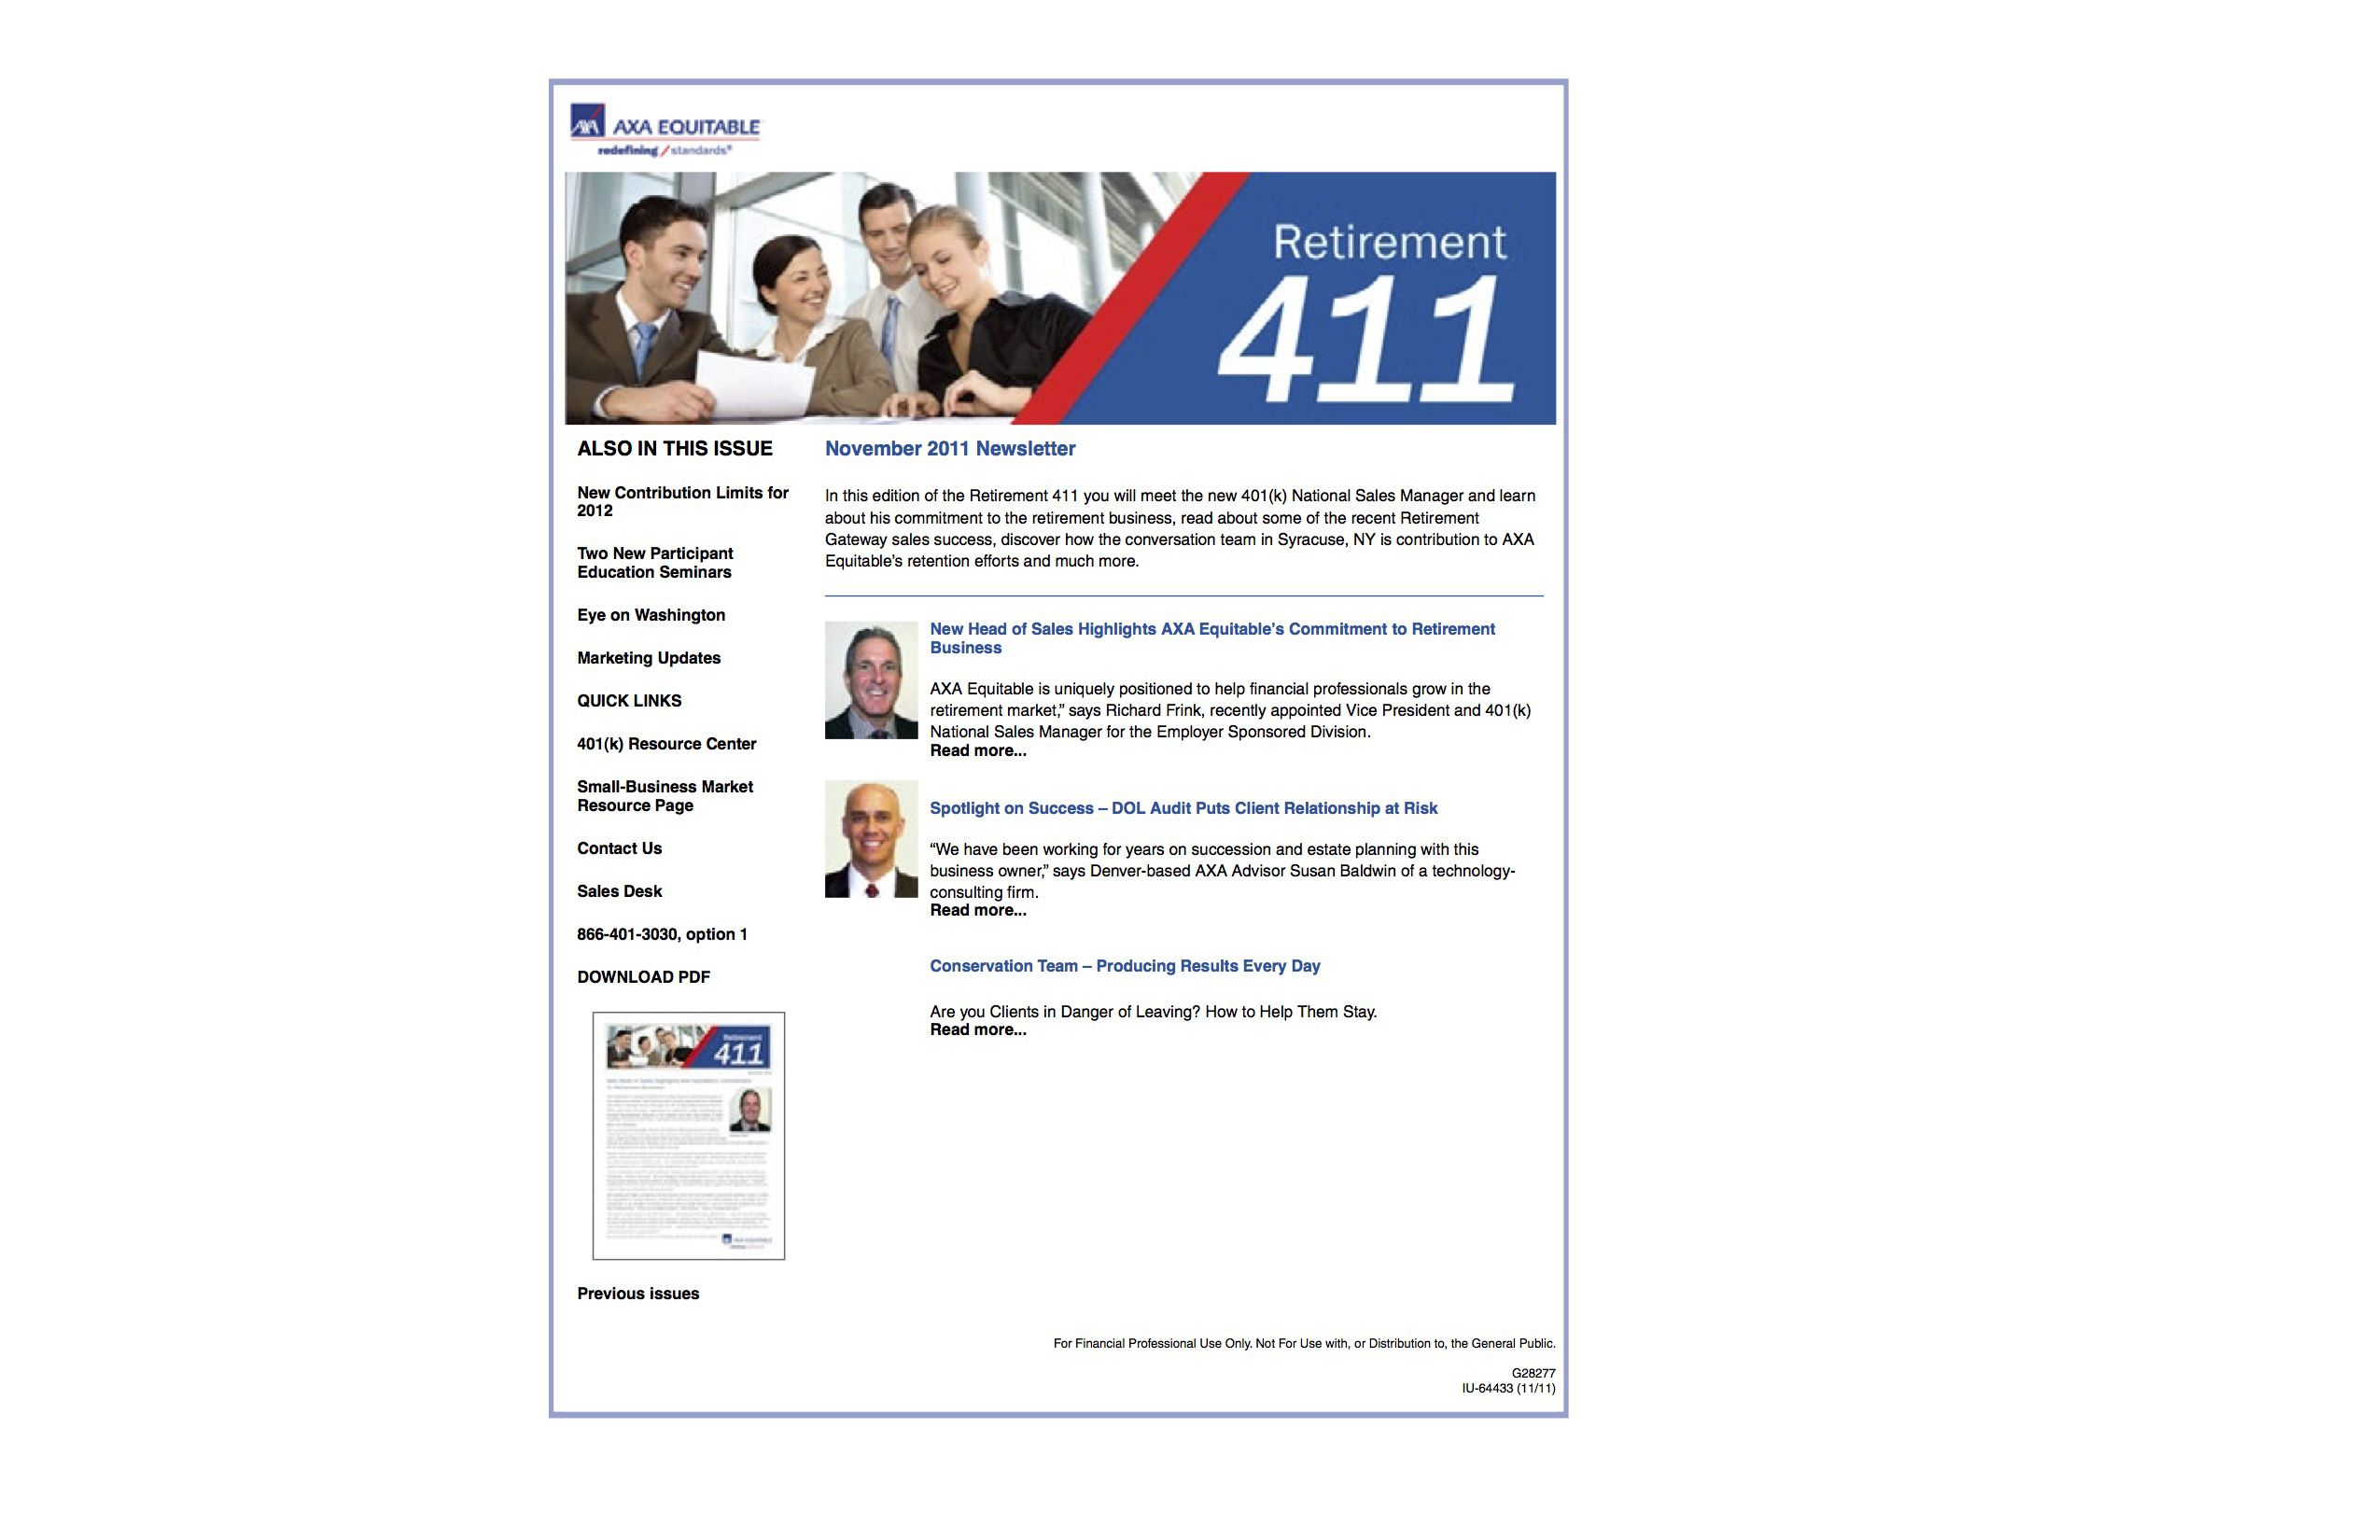 AXA Equitable Newsletter